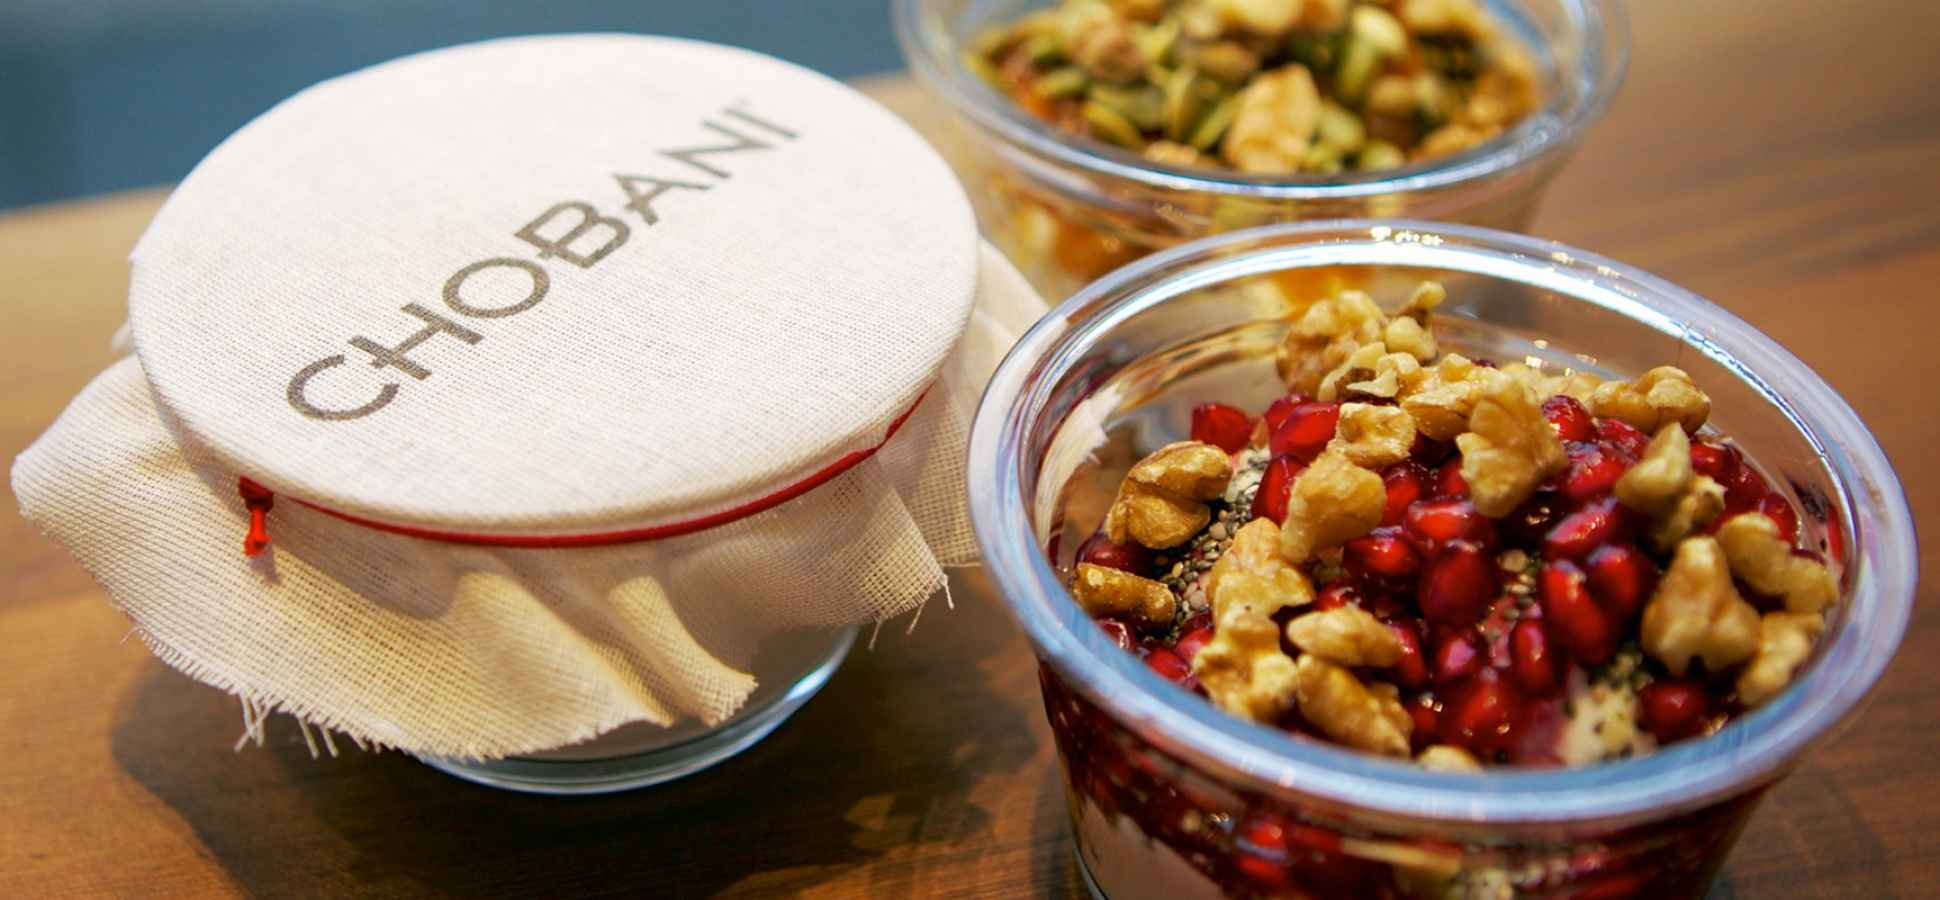 Even Chobani Can't Stay Independent Forever: Yogurtmaker Looks to Raise $500 Million